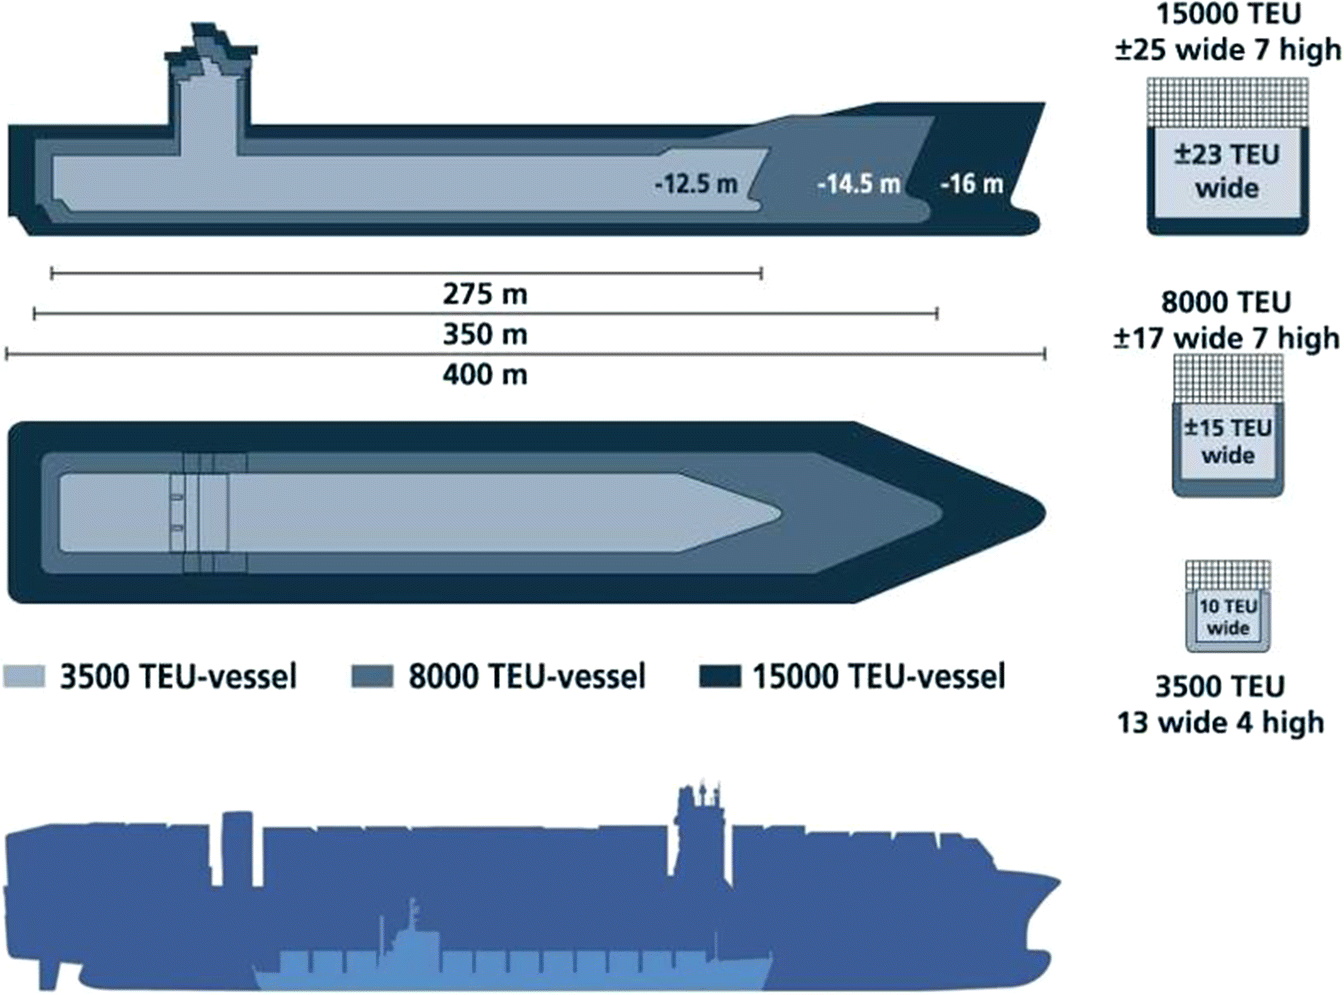 Gigantism in container shipping, ports and global logistics